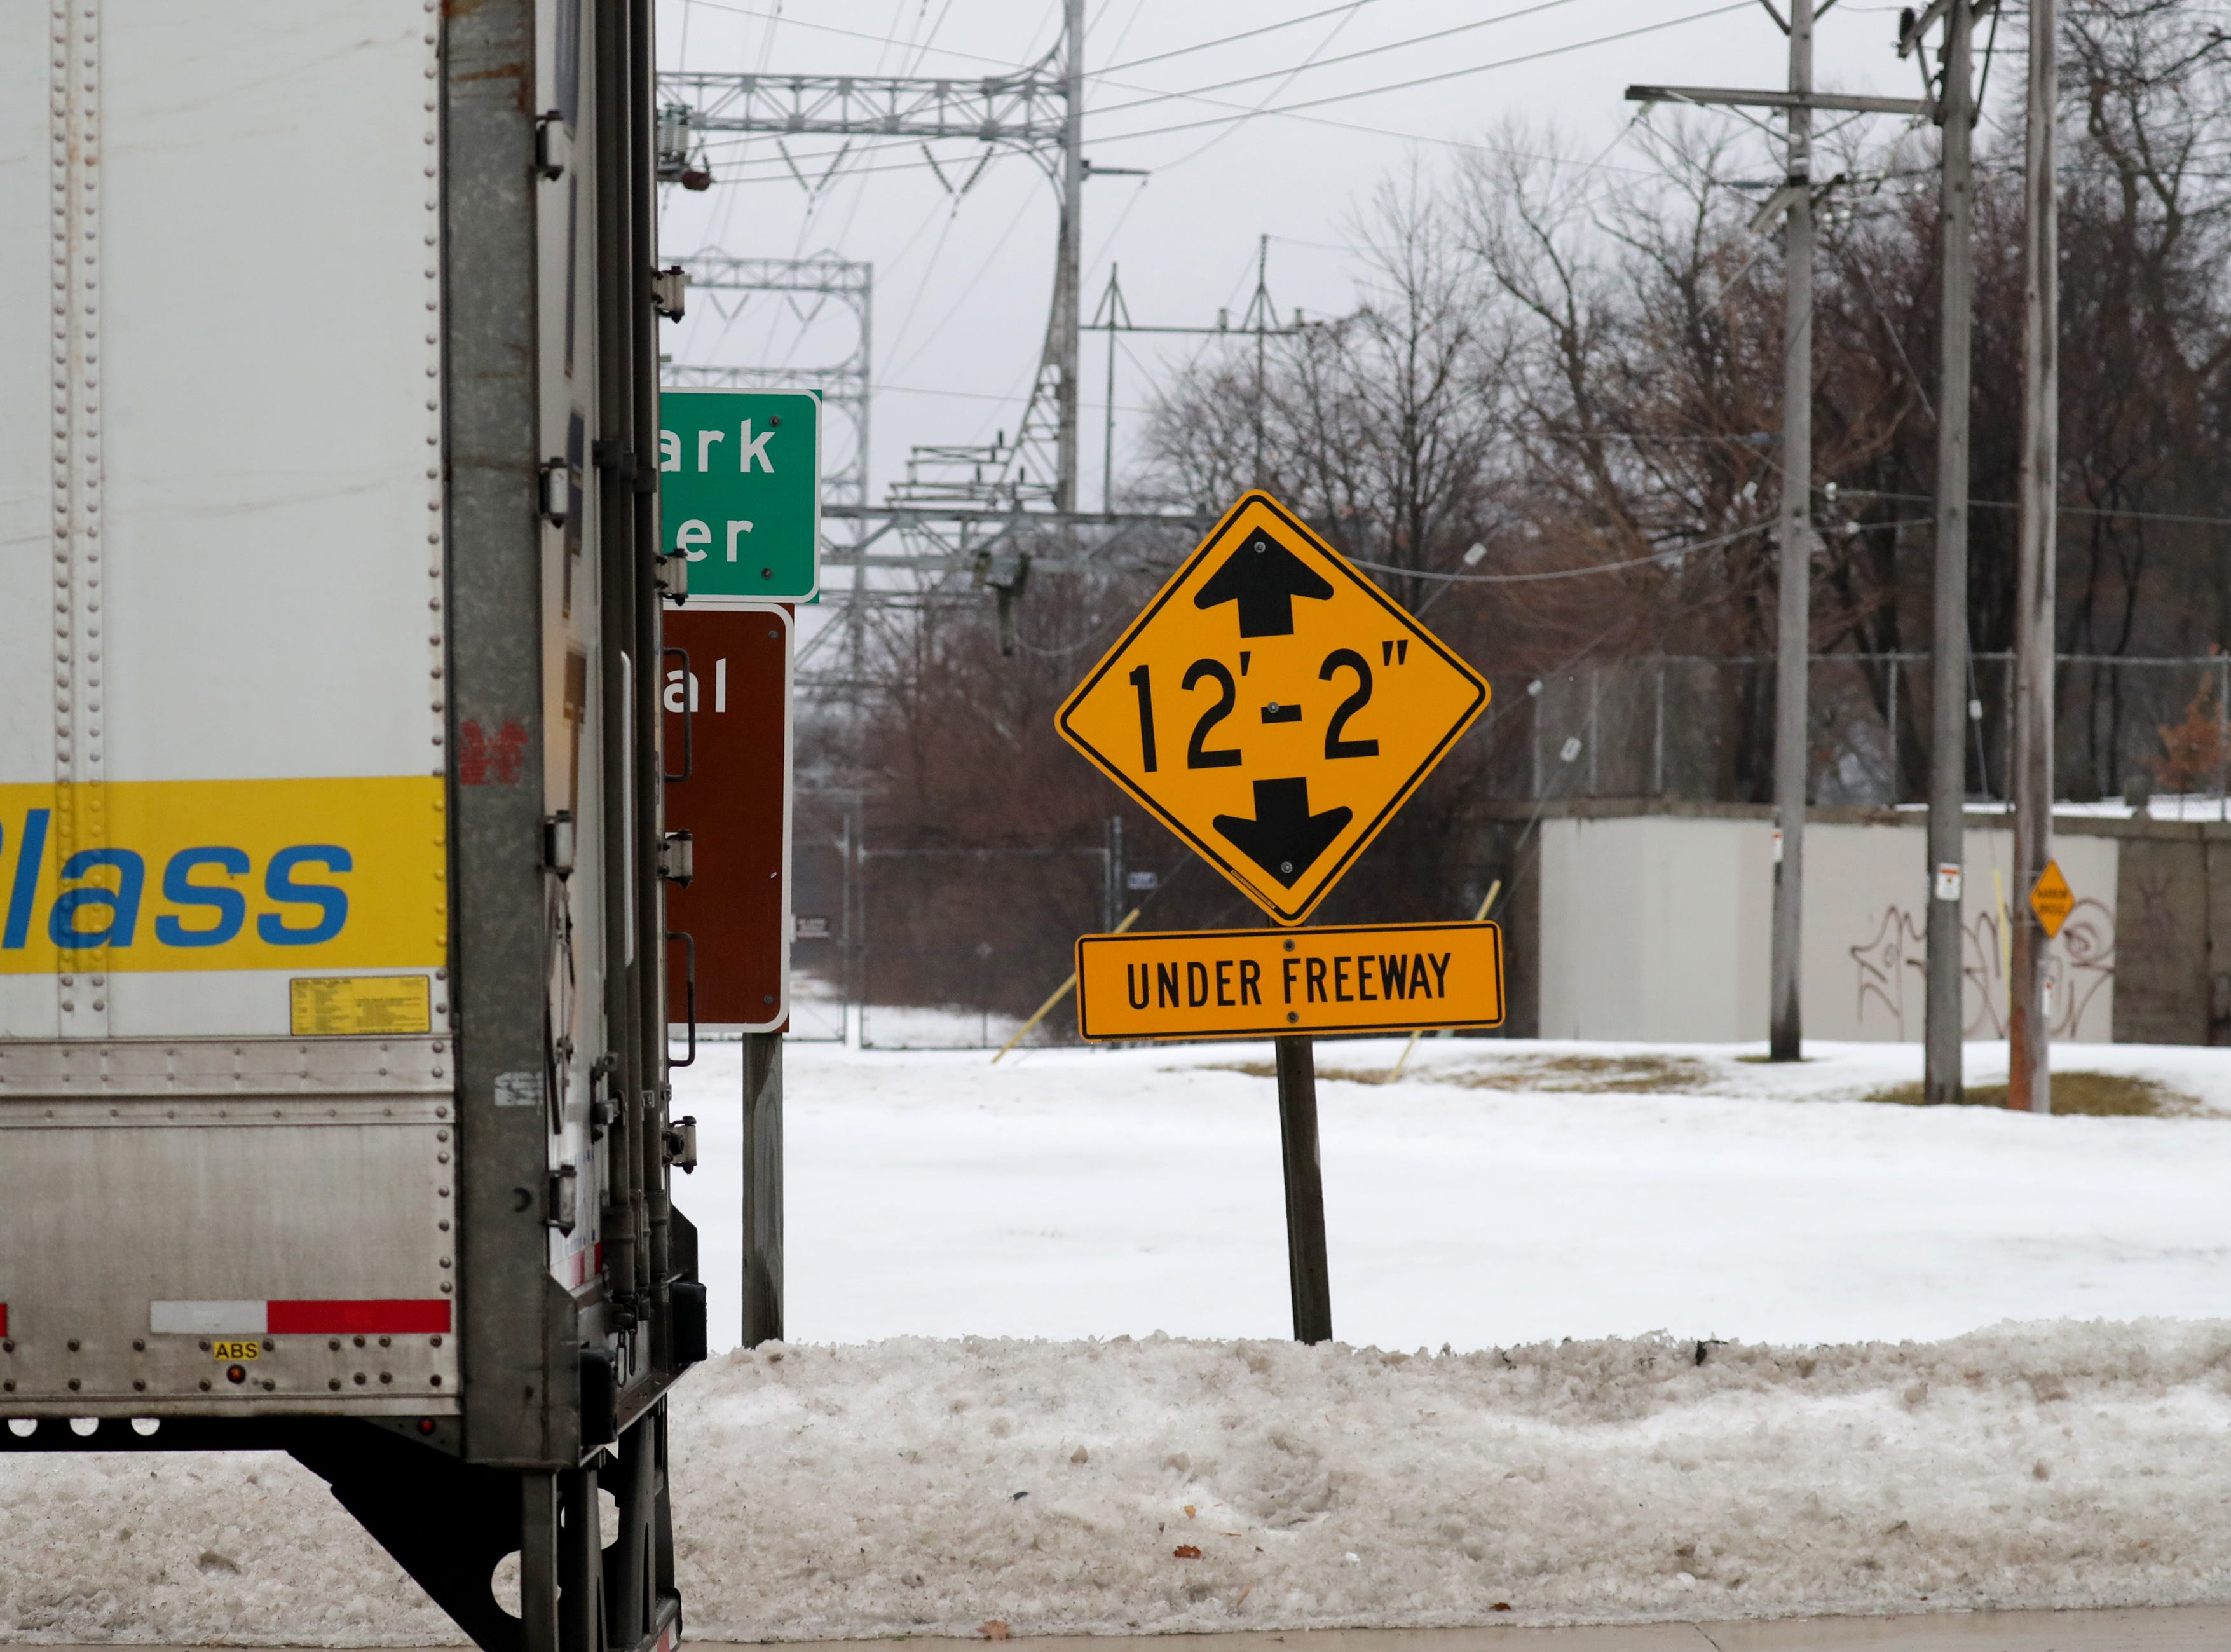 A sign marking the clearance of the bridge is seen as the semi truck is stuck.